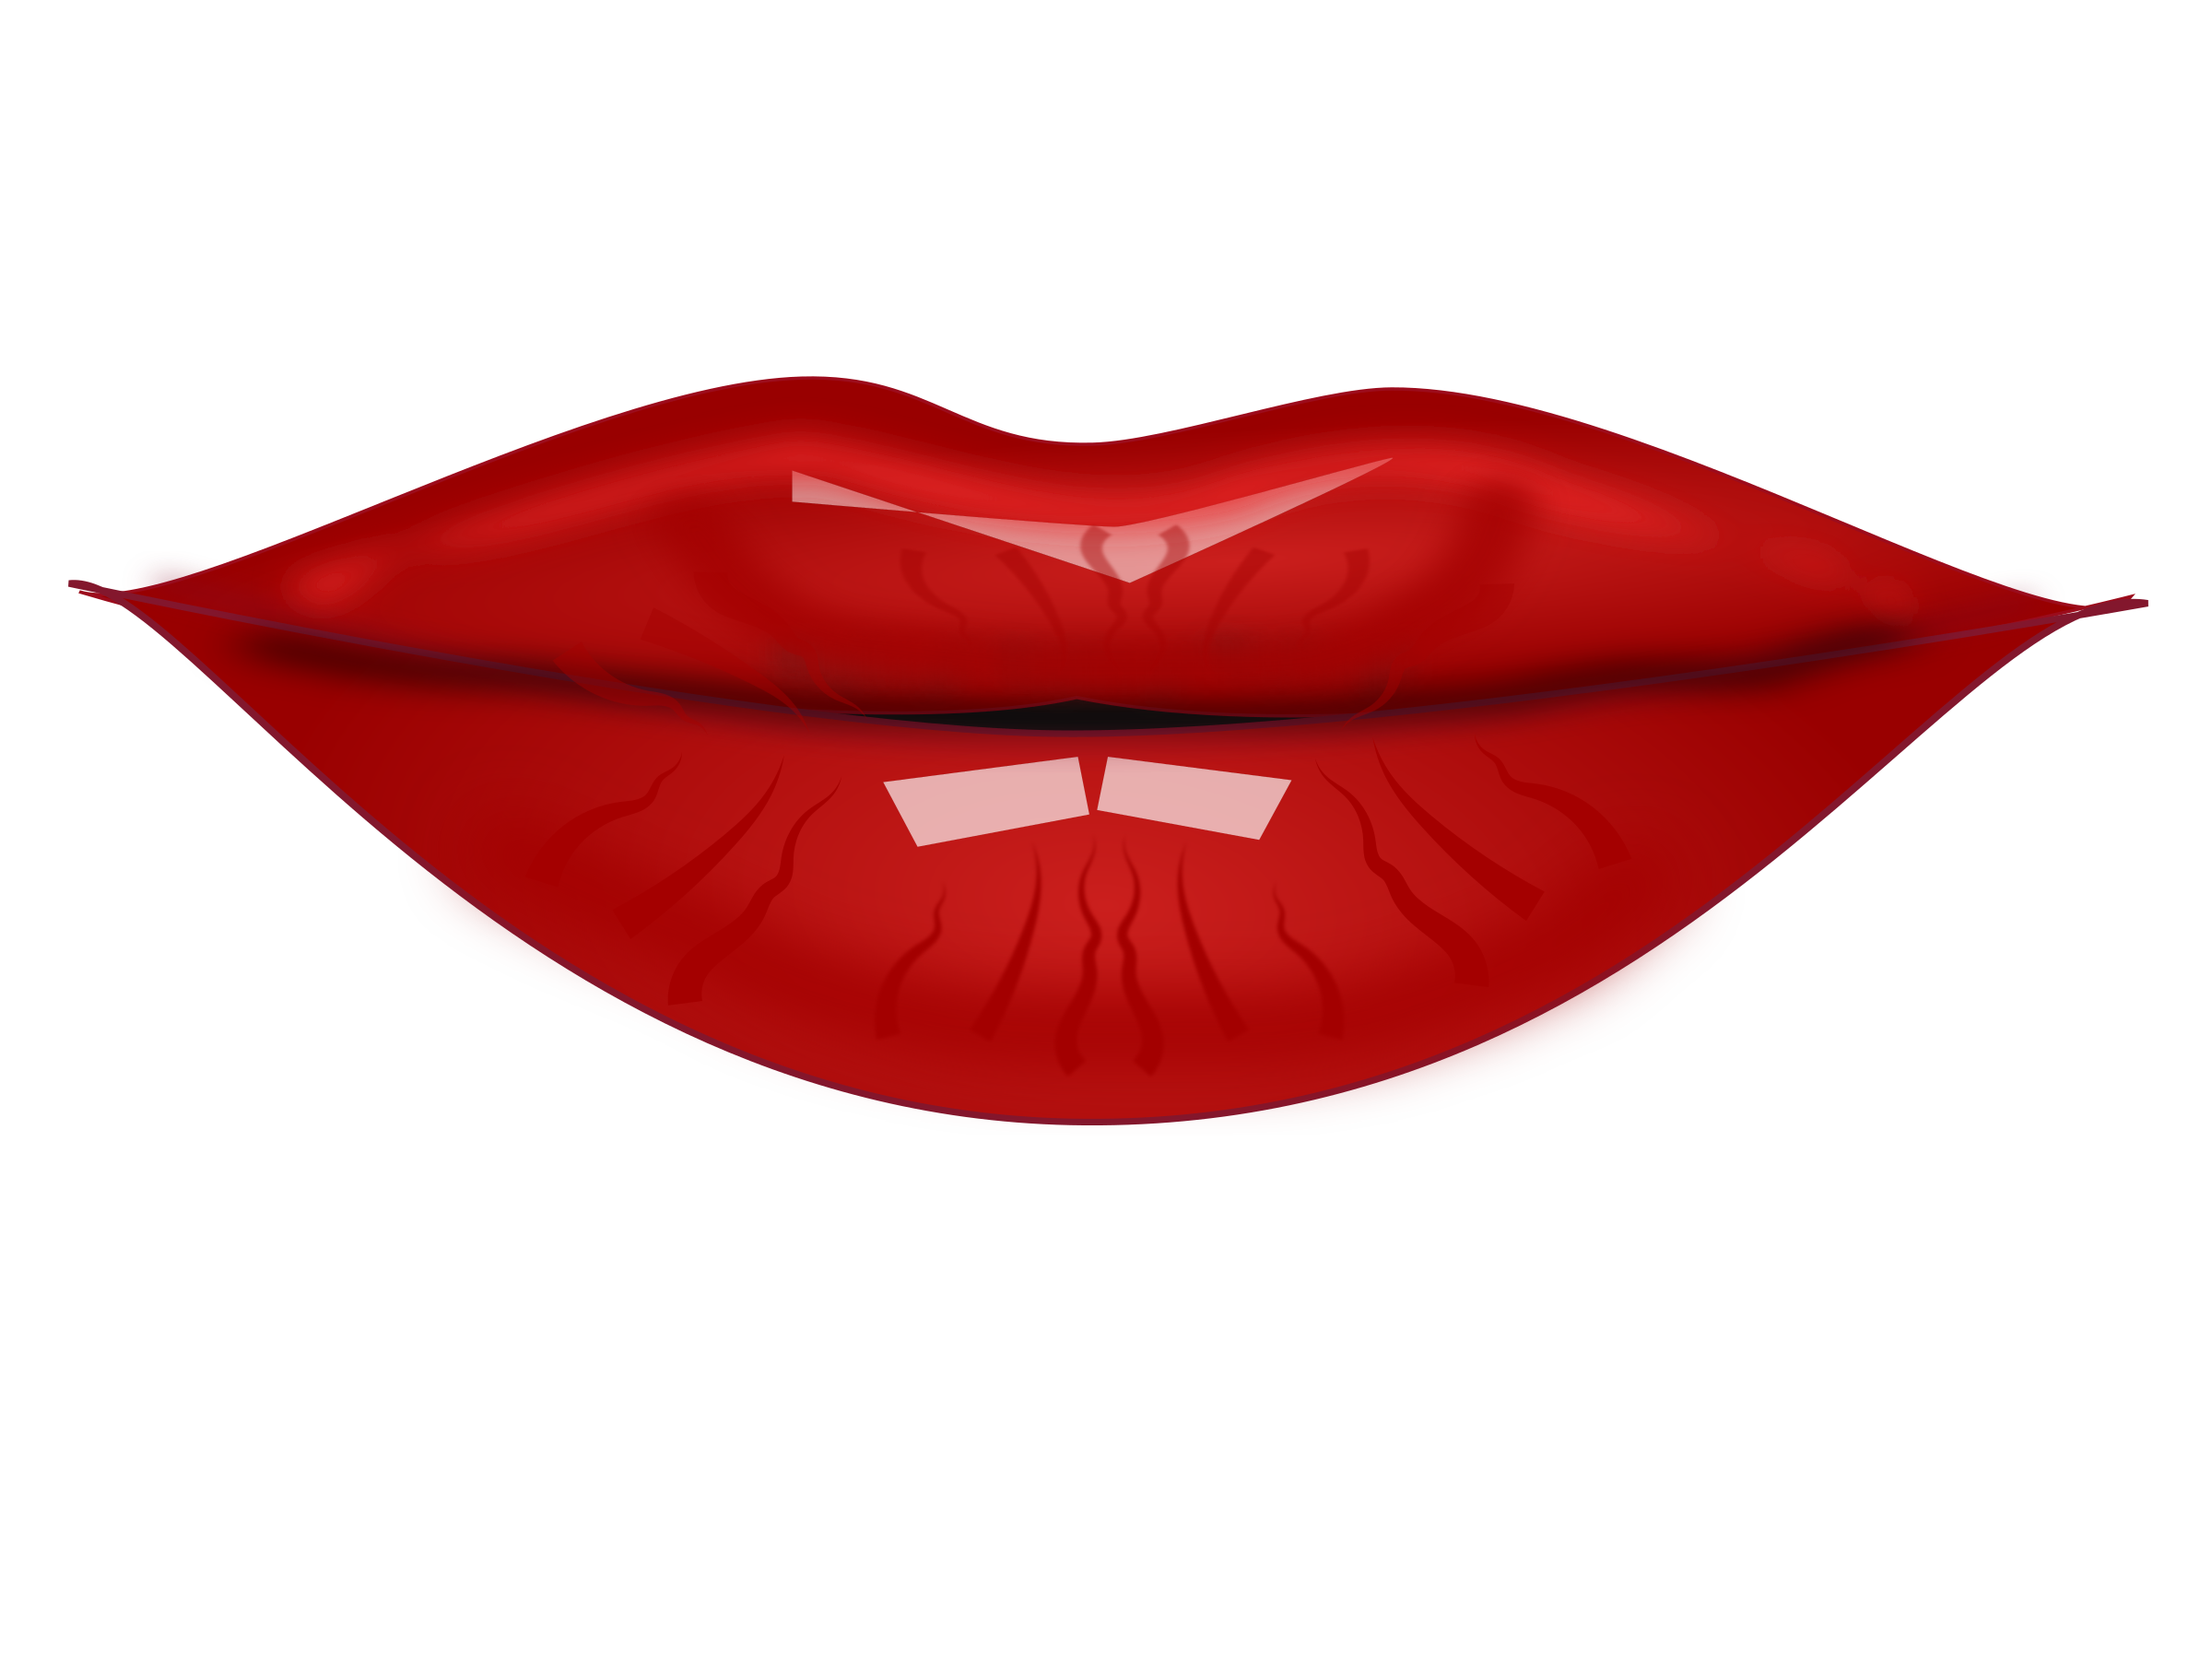 Clipart lips by netalloy-Clipart lips by netalloy-6